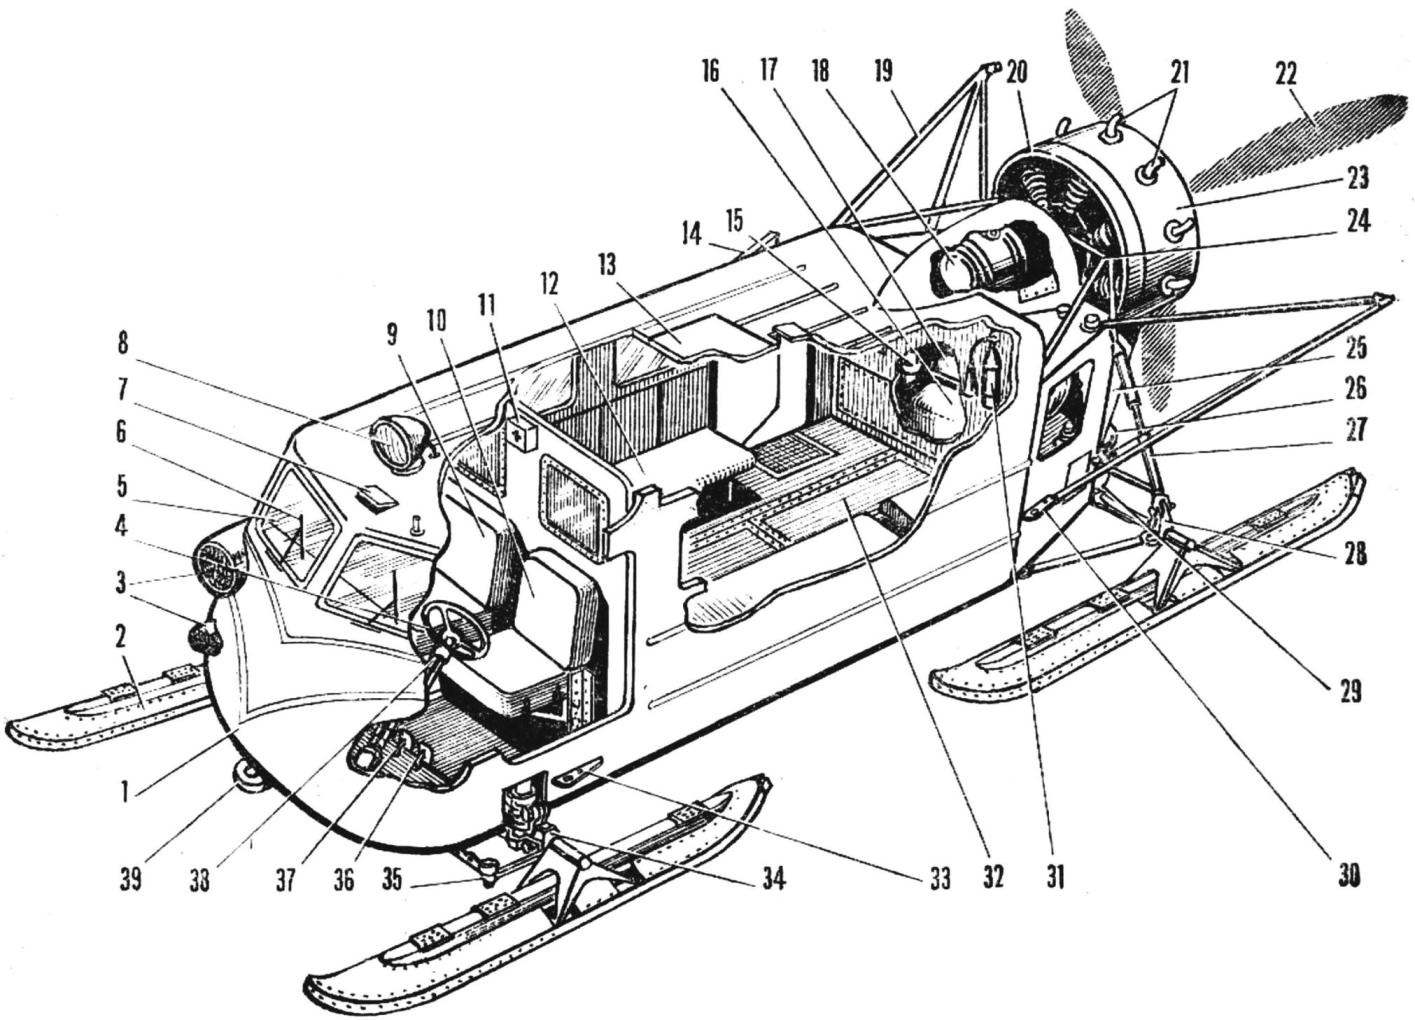 The layout of the snowmobile Ka-30